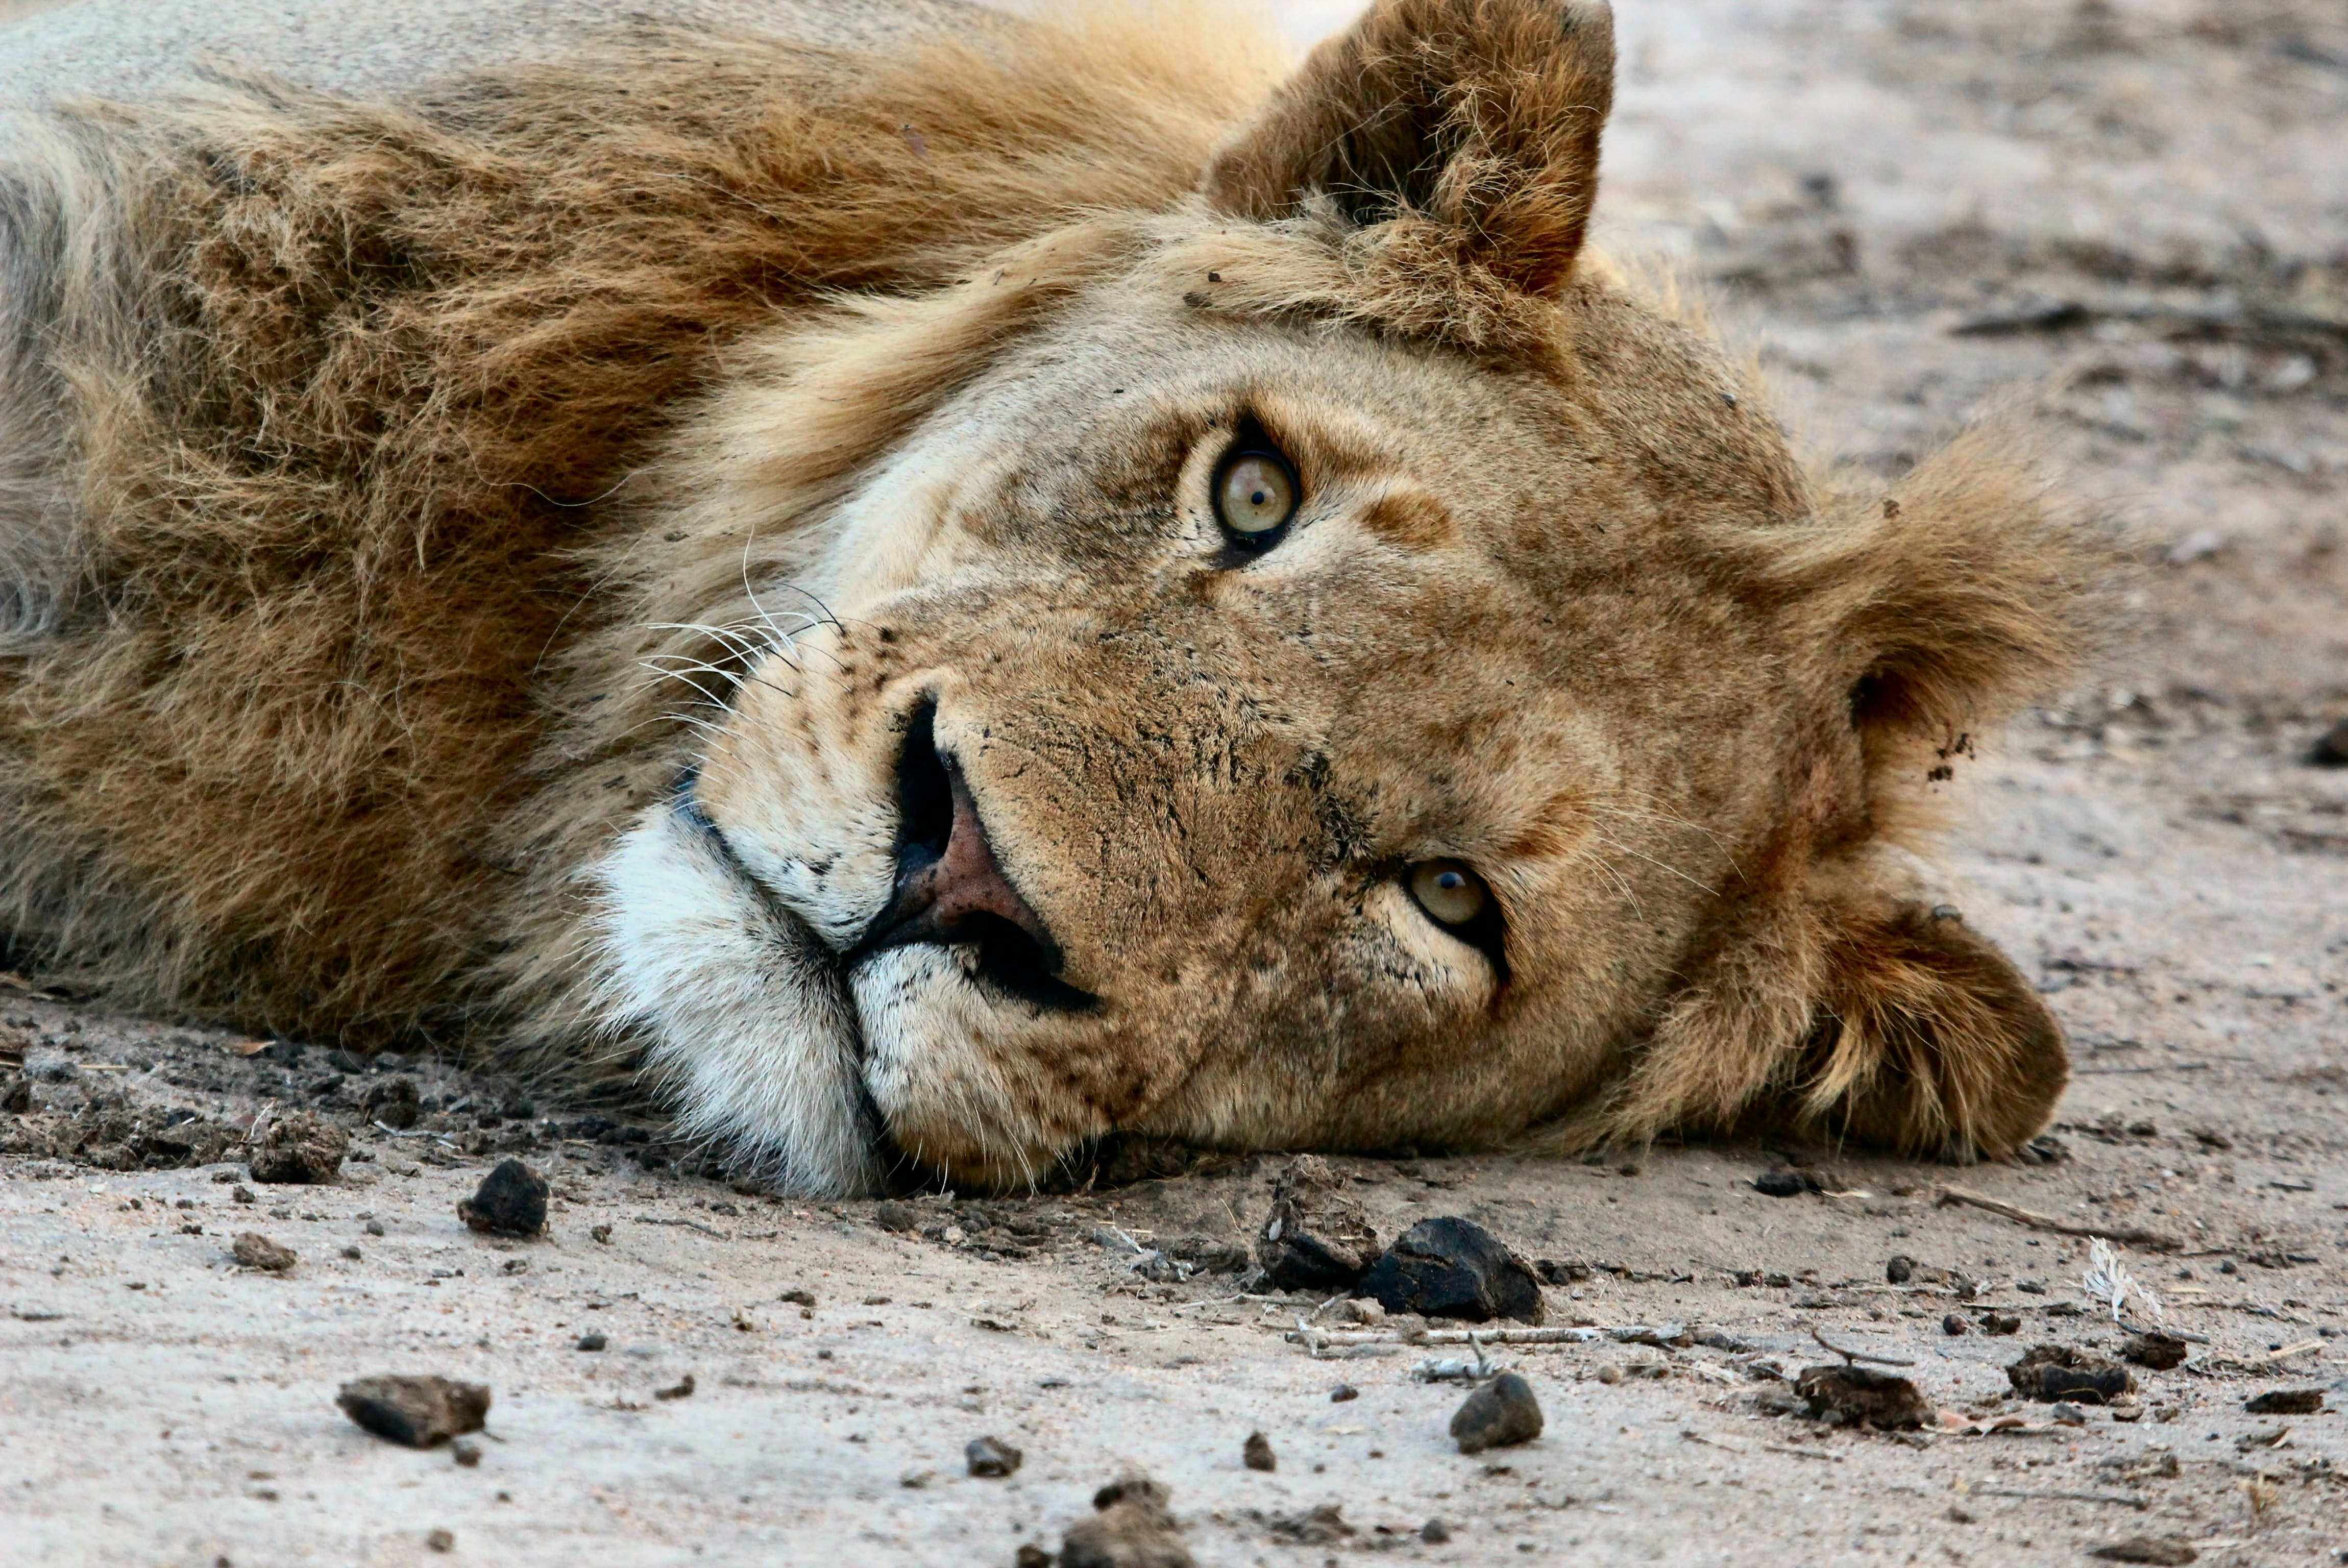 Close-up of the face of a lion lying on dirt ground